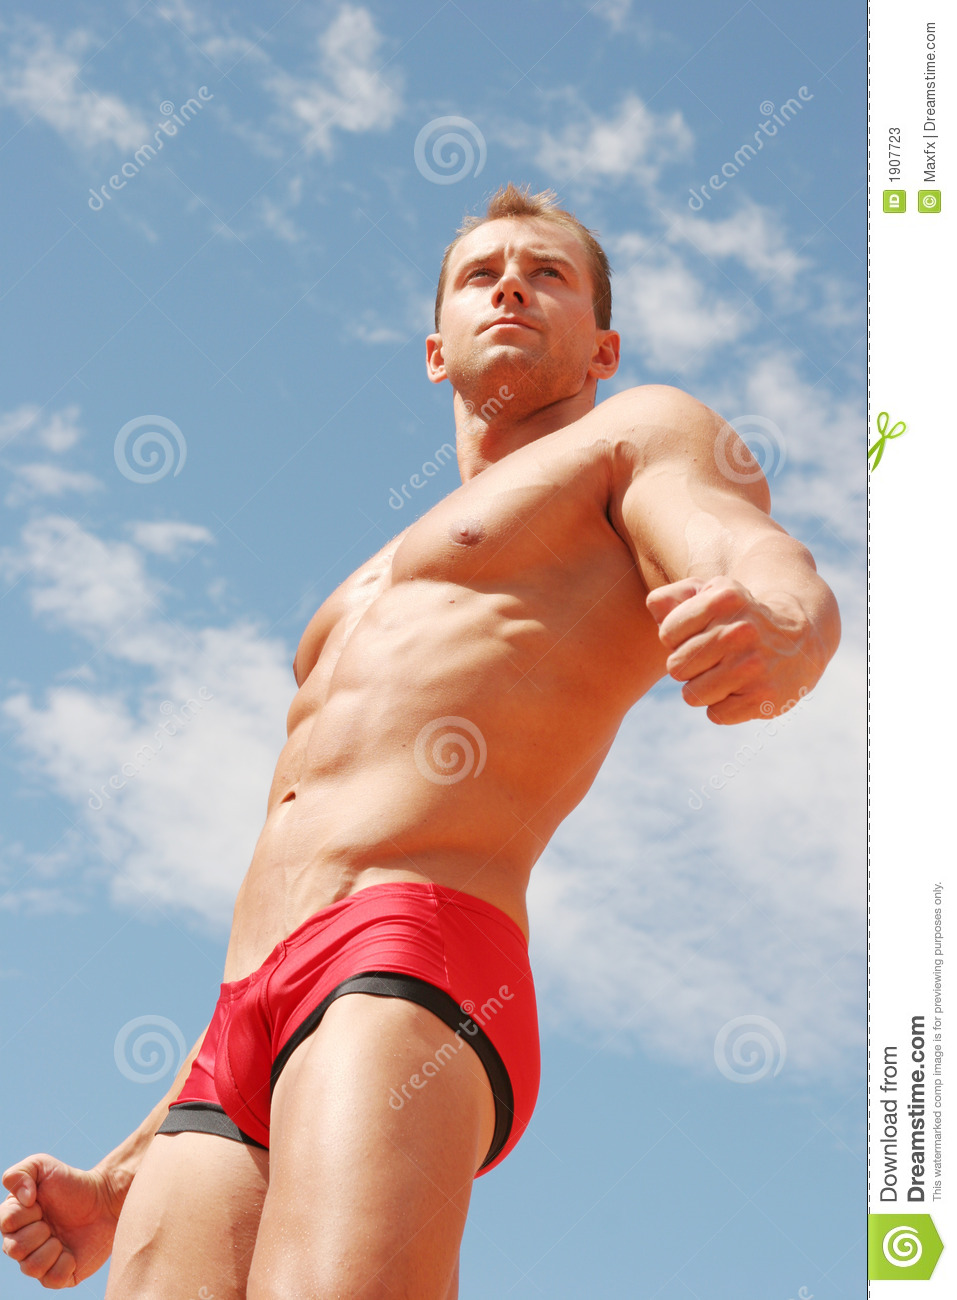 Sexy Athletic Handsome Man - Washboard Abs Stock